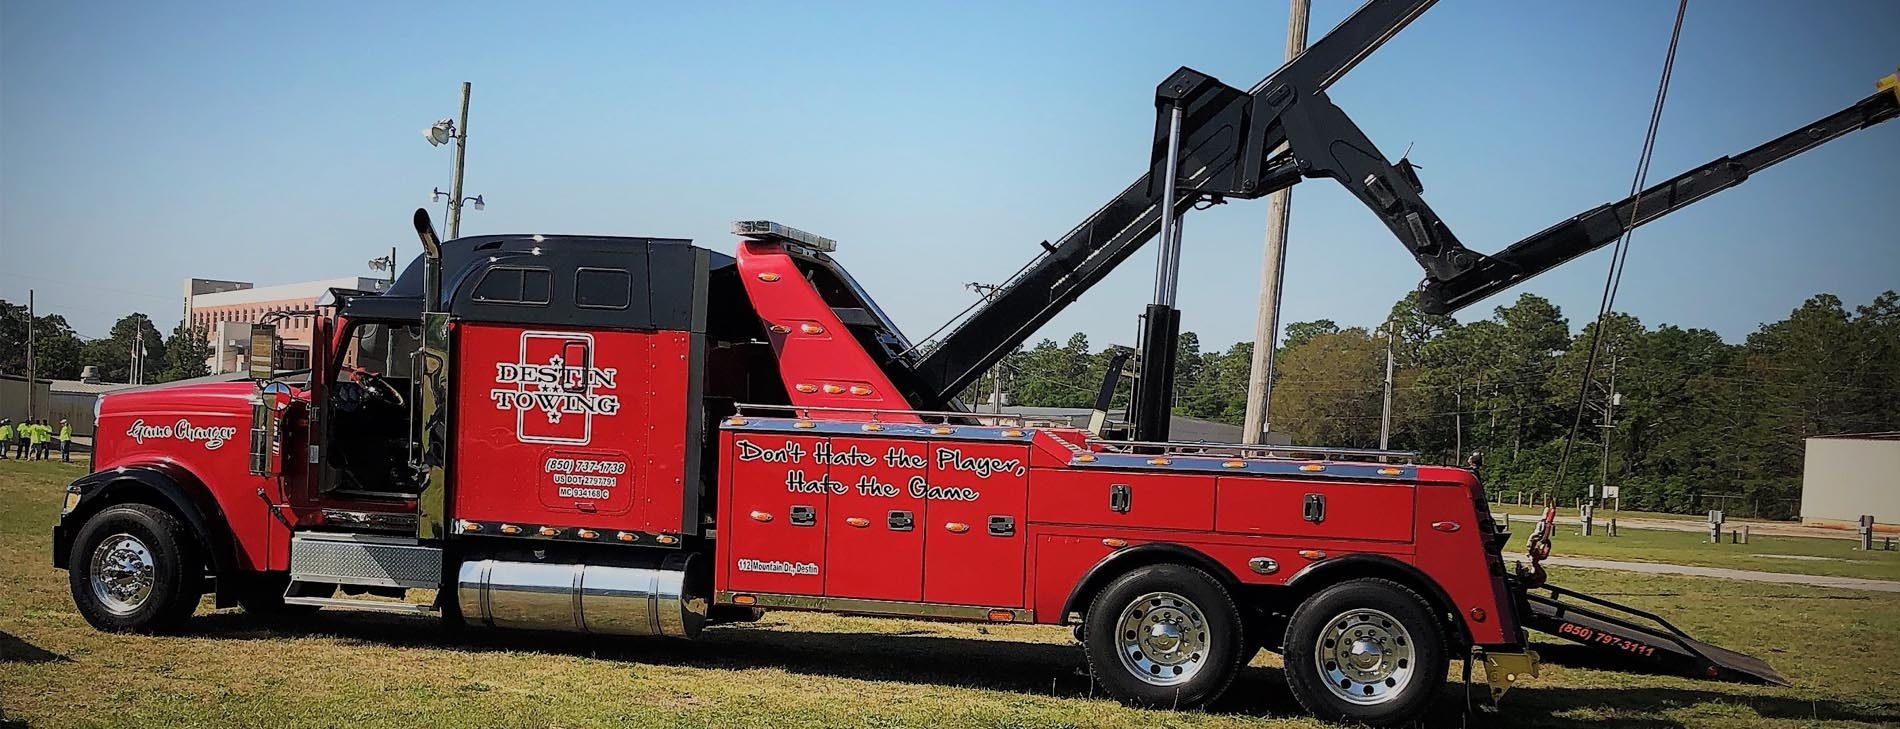 A Banner sized image of a Destin towing truck